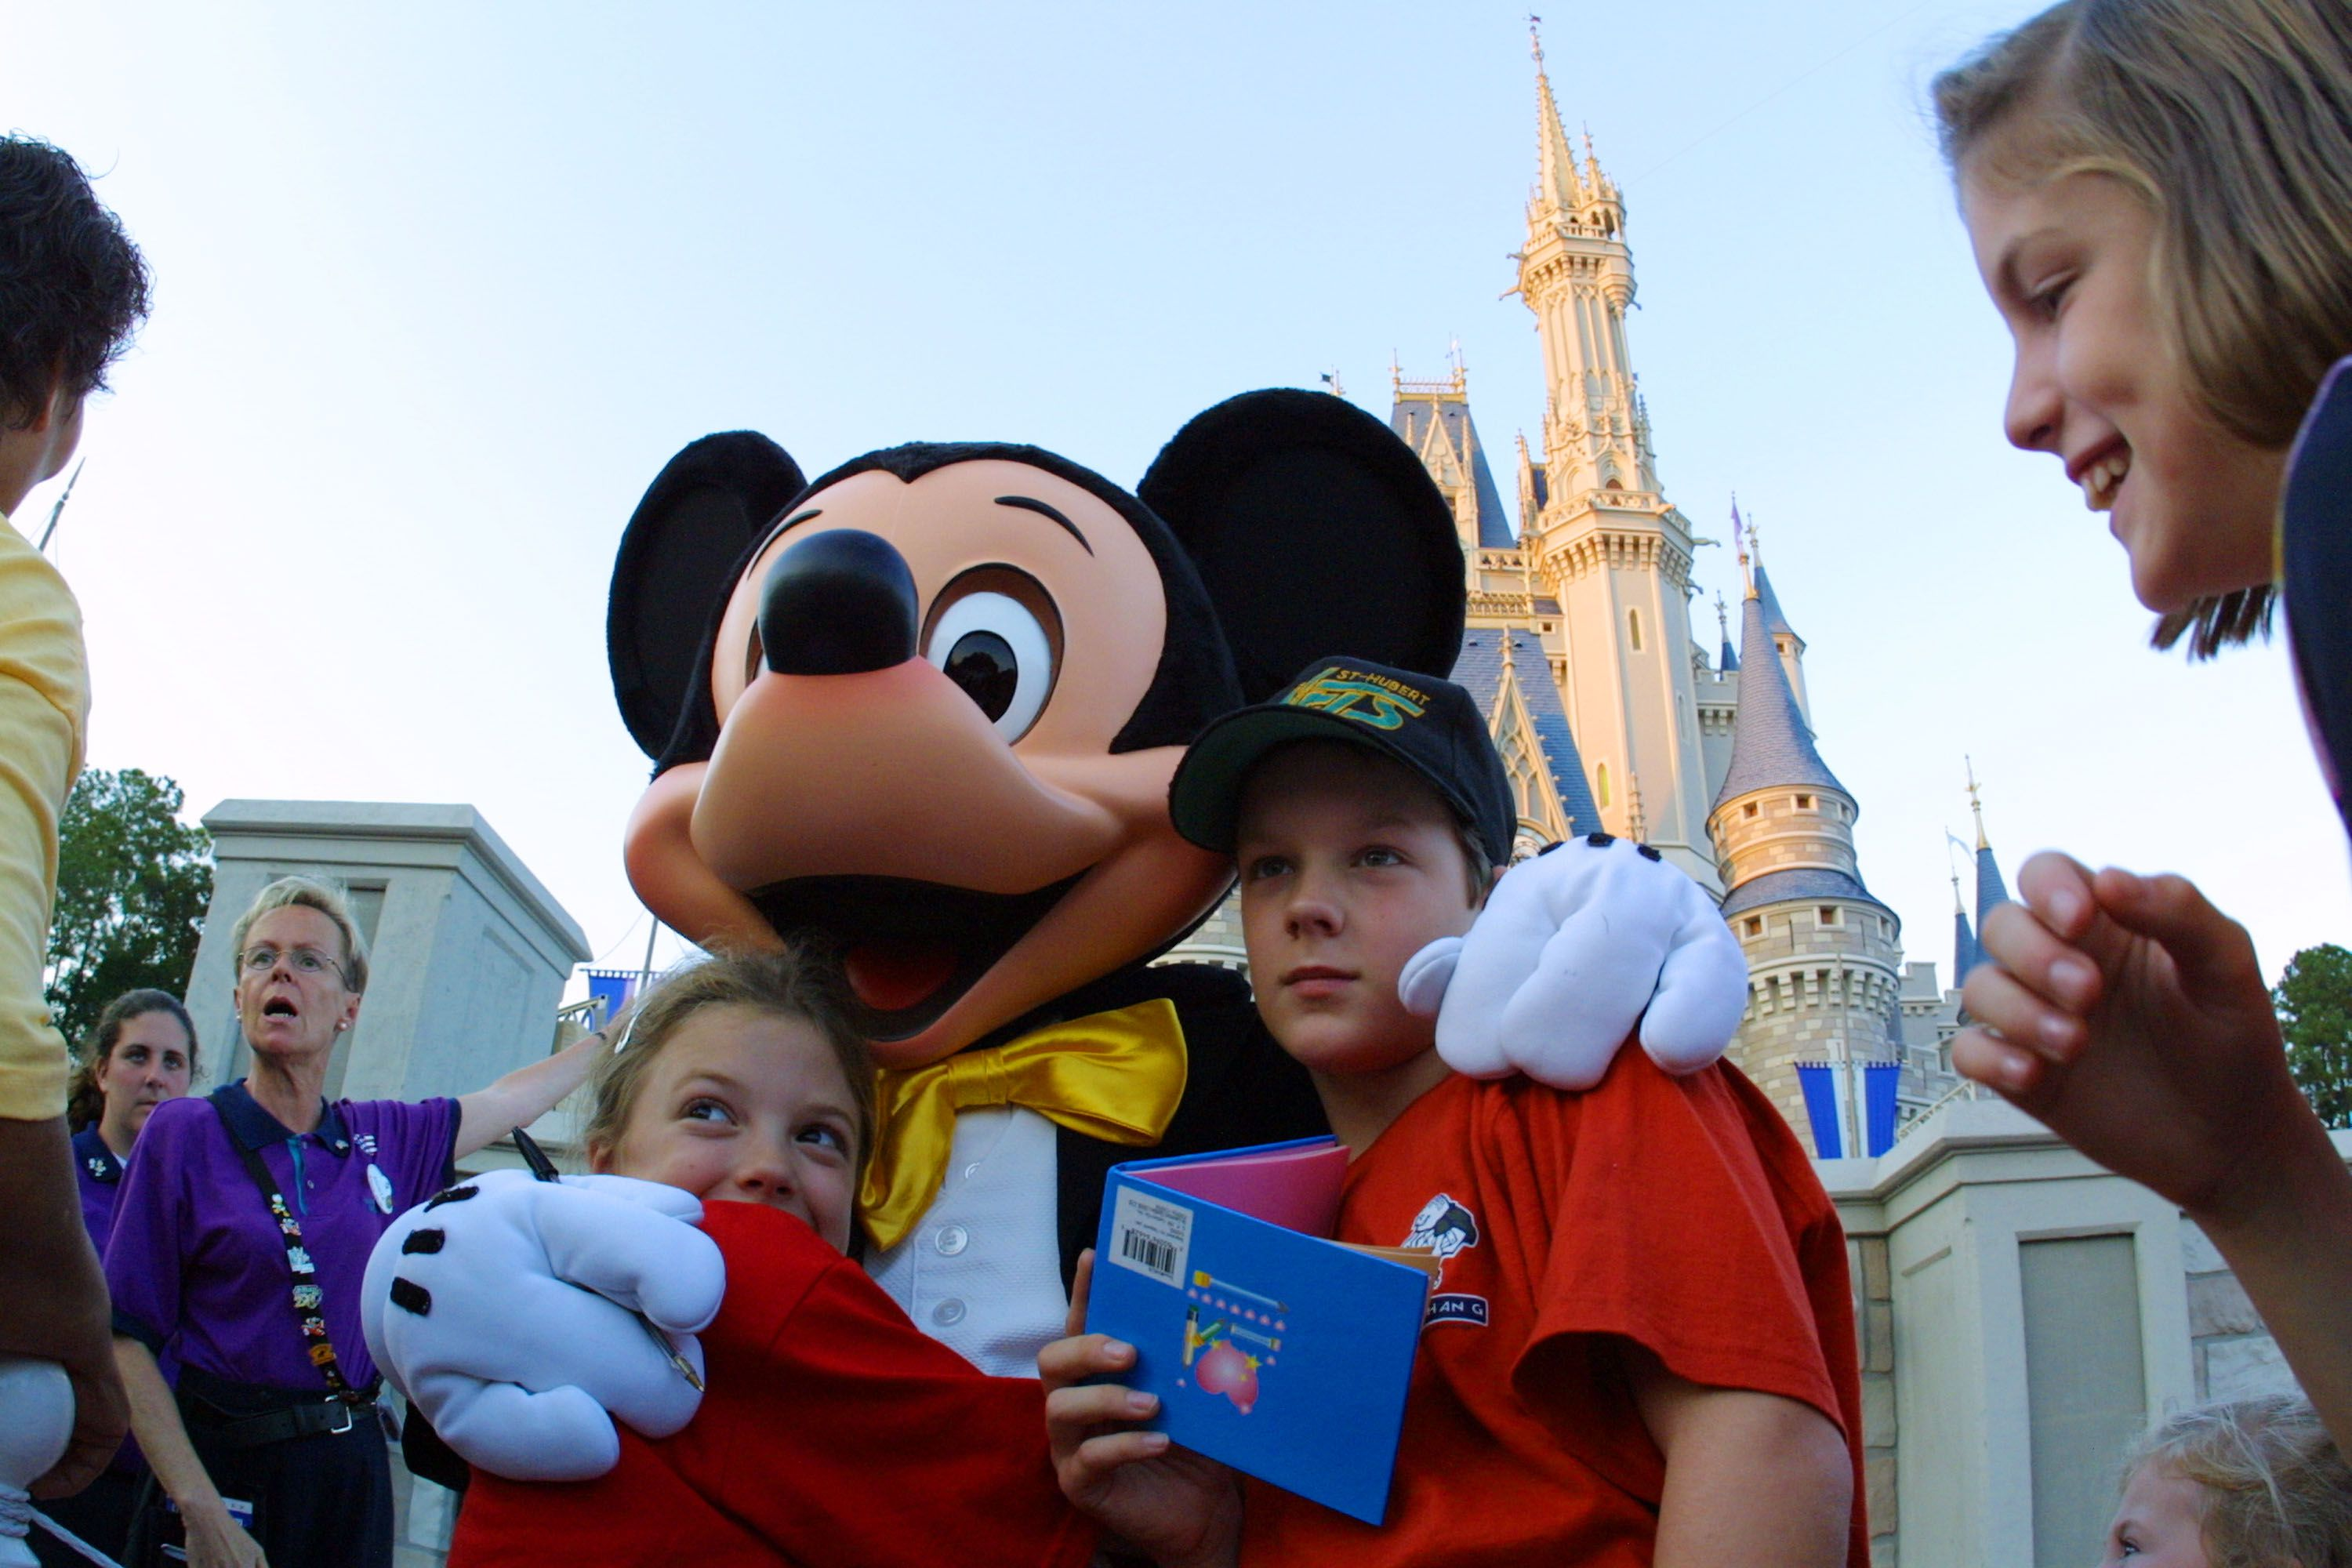 Uncategorized Disney Kids.com best disney world resorts for toddlers and preschoolers rides tips vacationing with kids in world